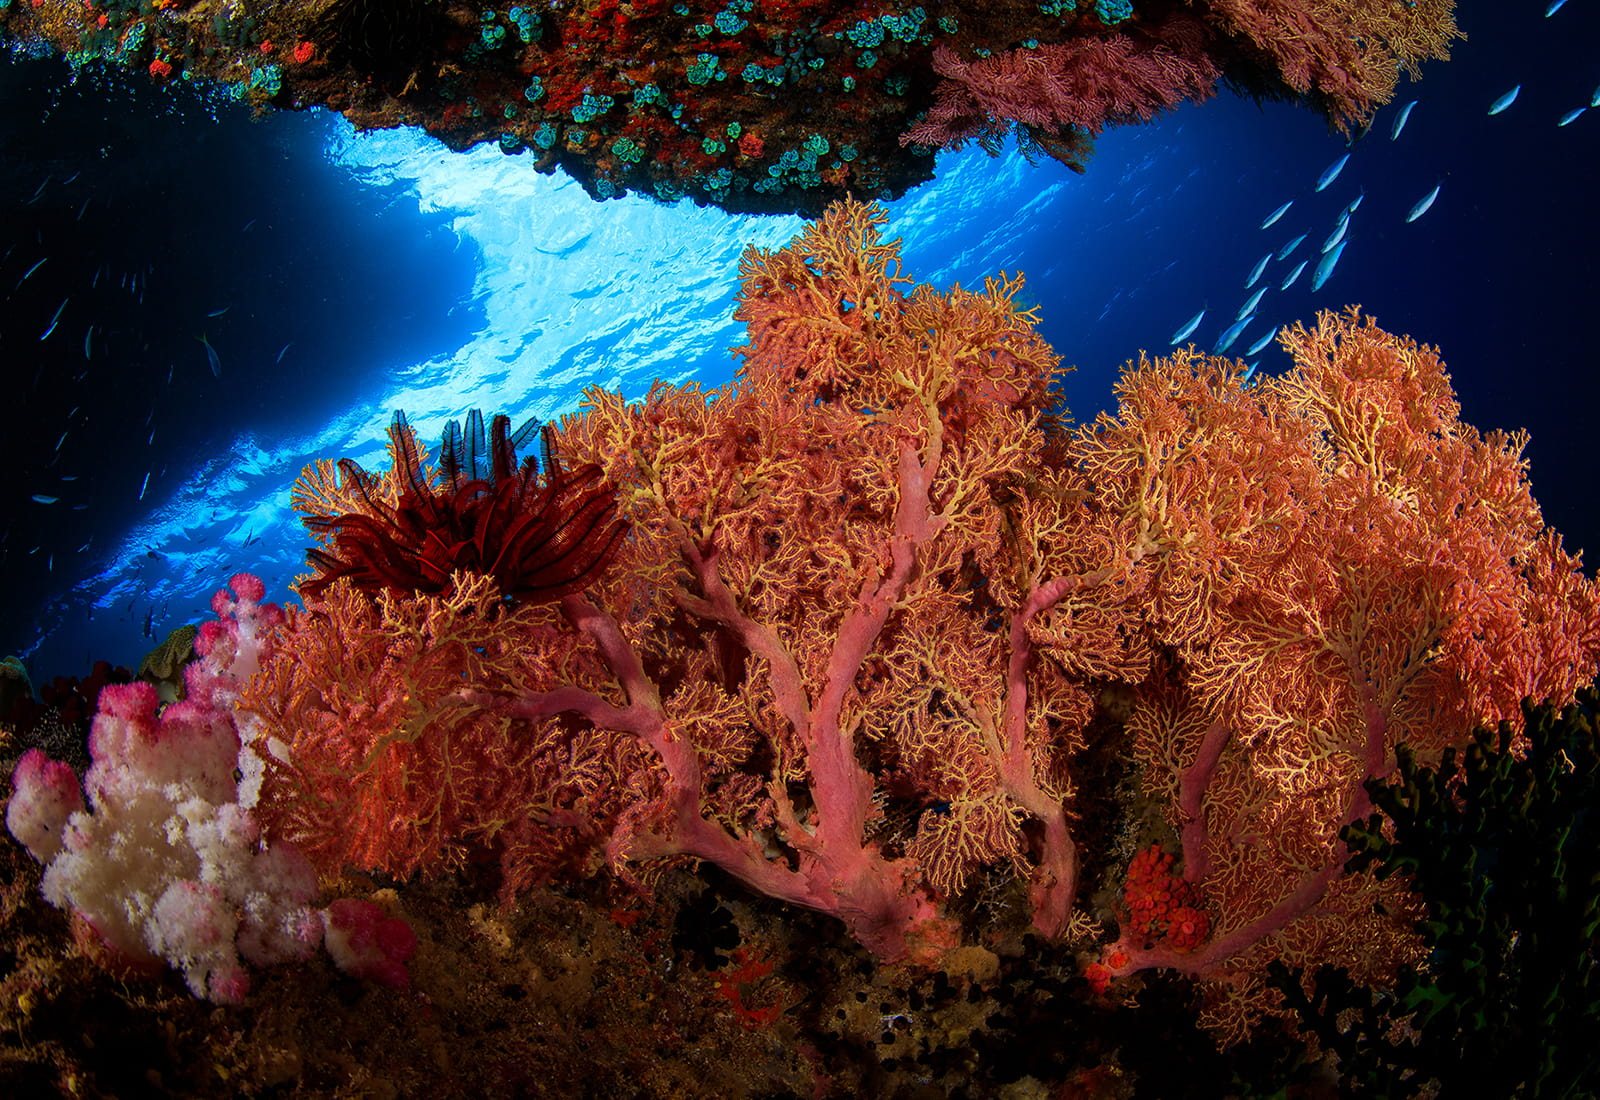 Coral reef off the coast of Indonesia.